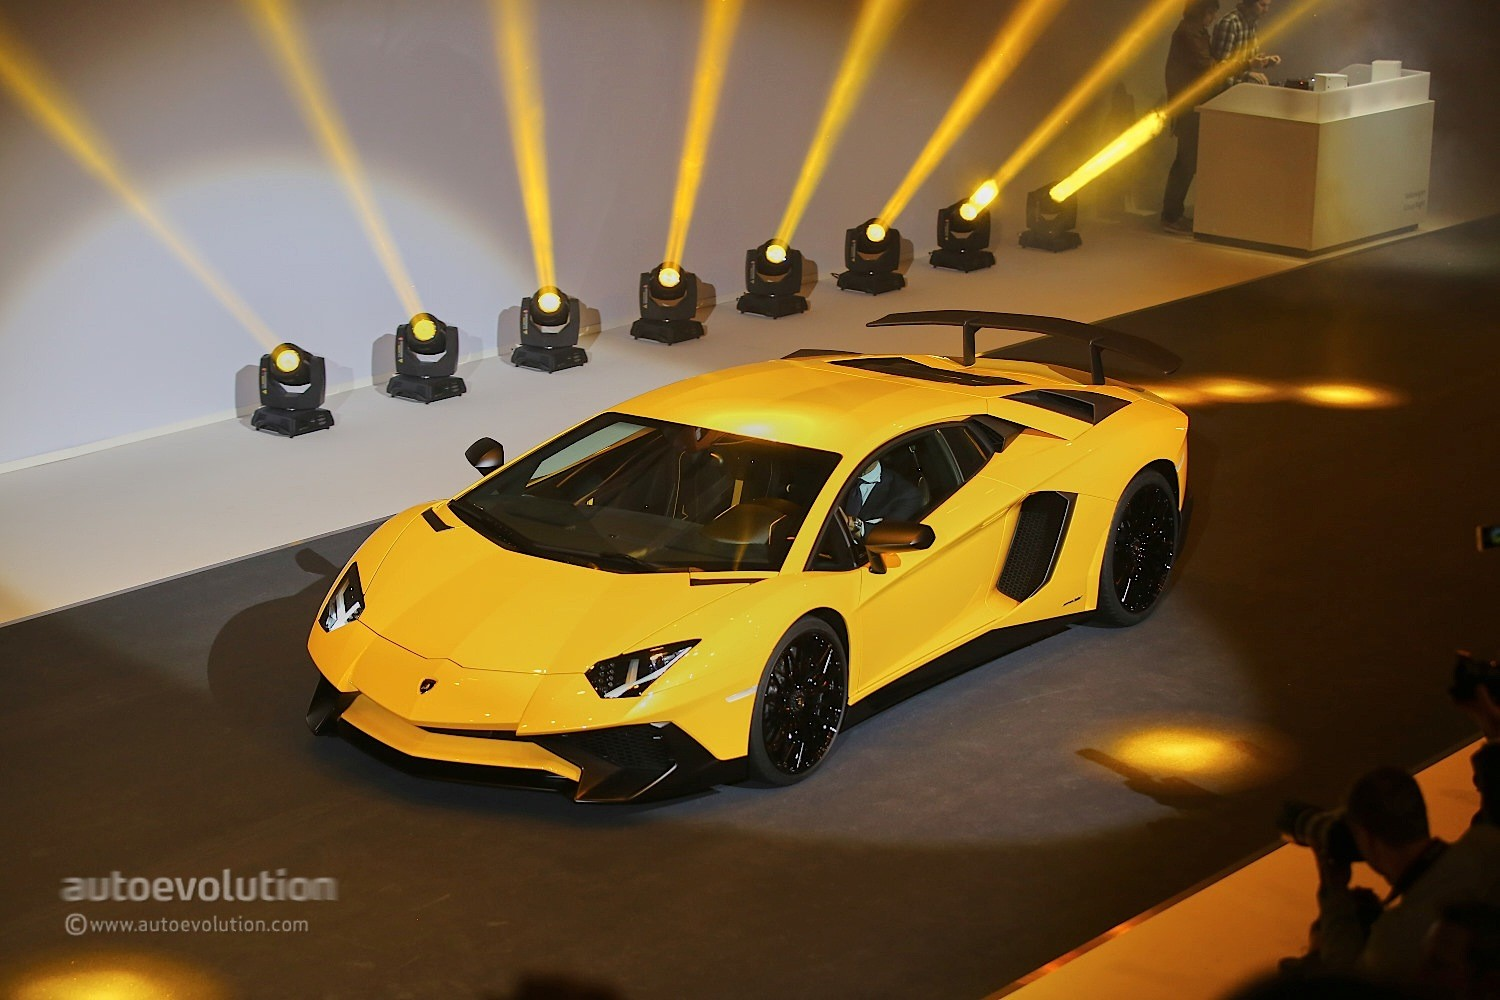 aventador-lp-750-4-superveloce-is-the-fastest-production-lamborghini-ever-live-photos_11